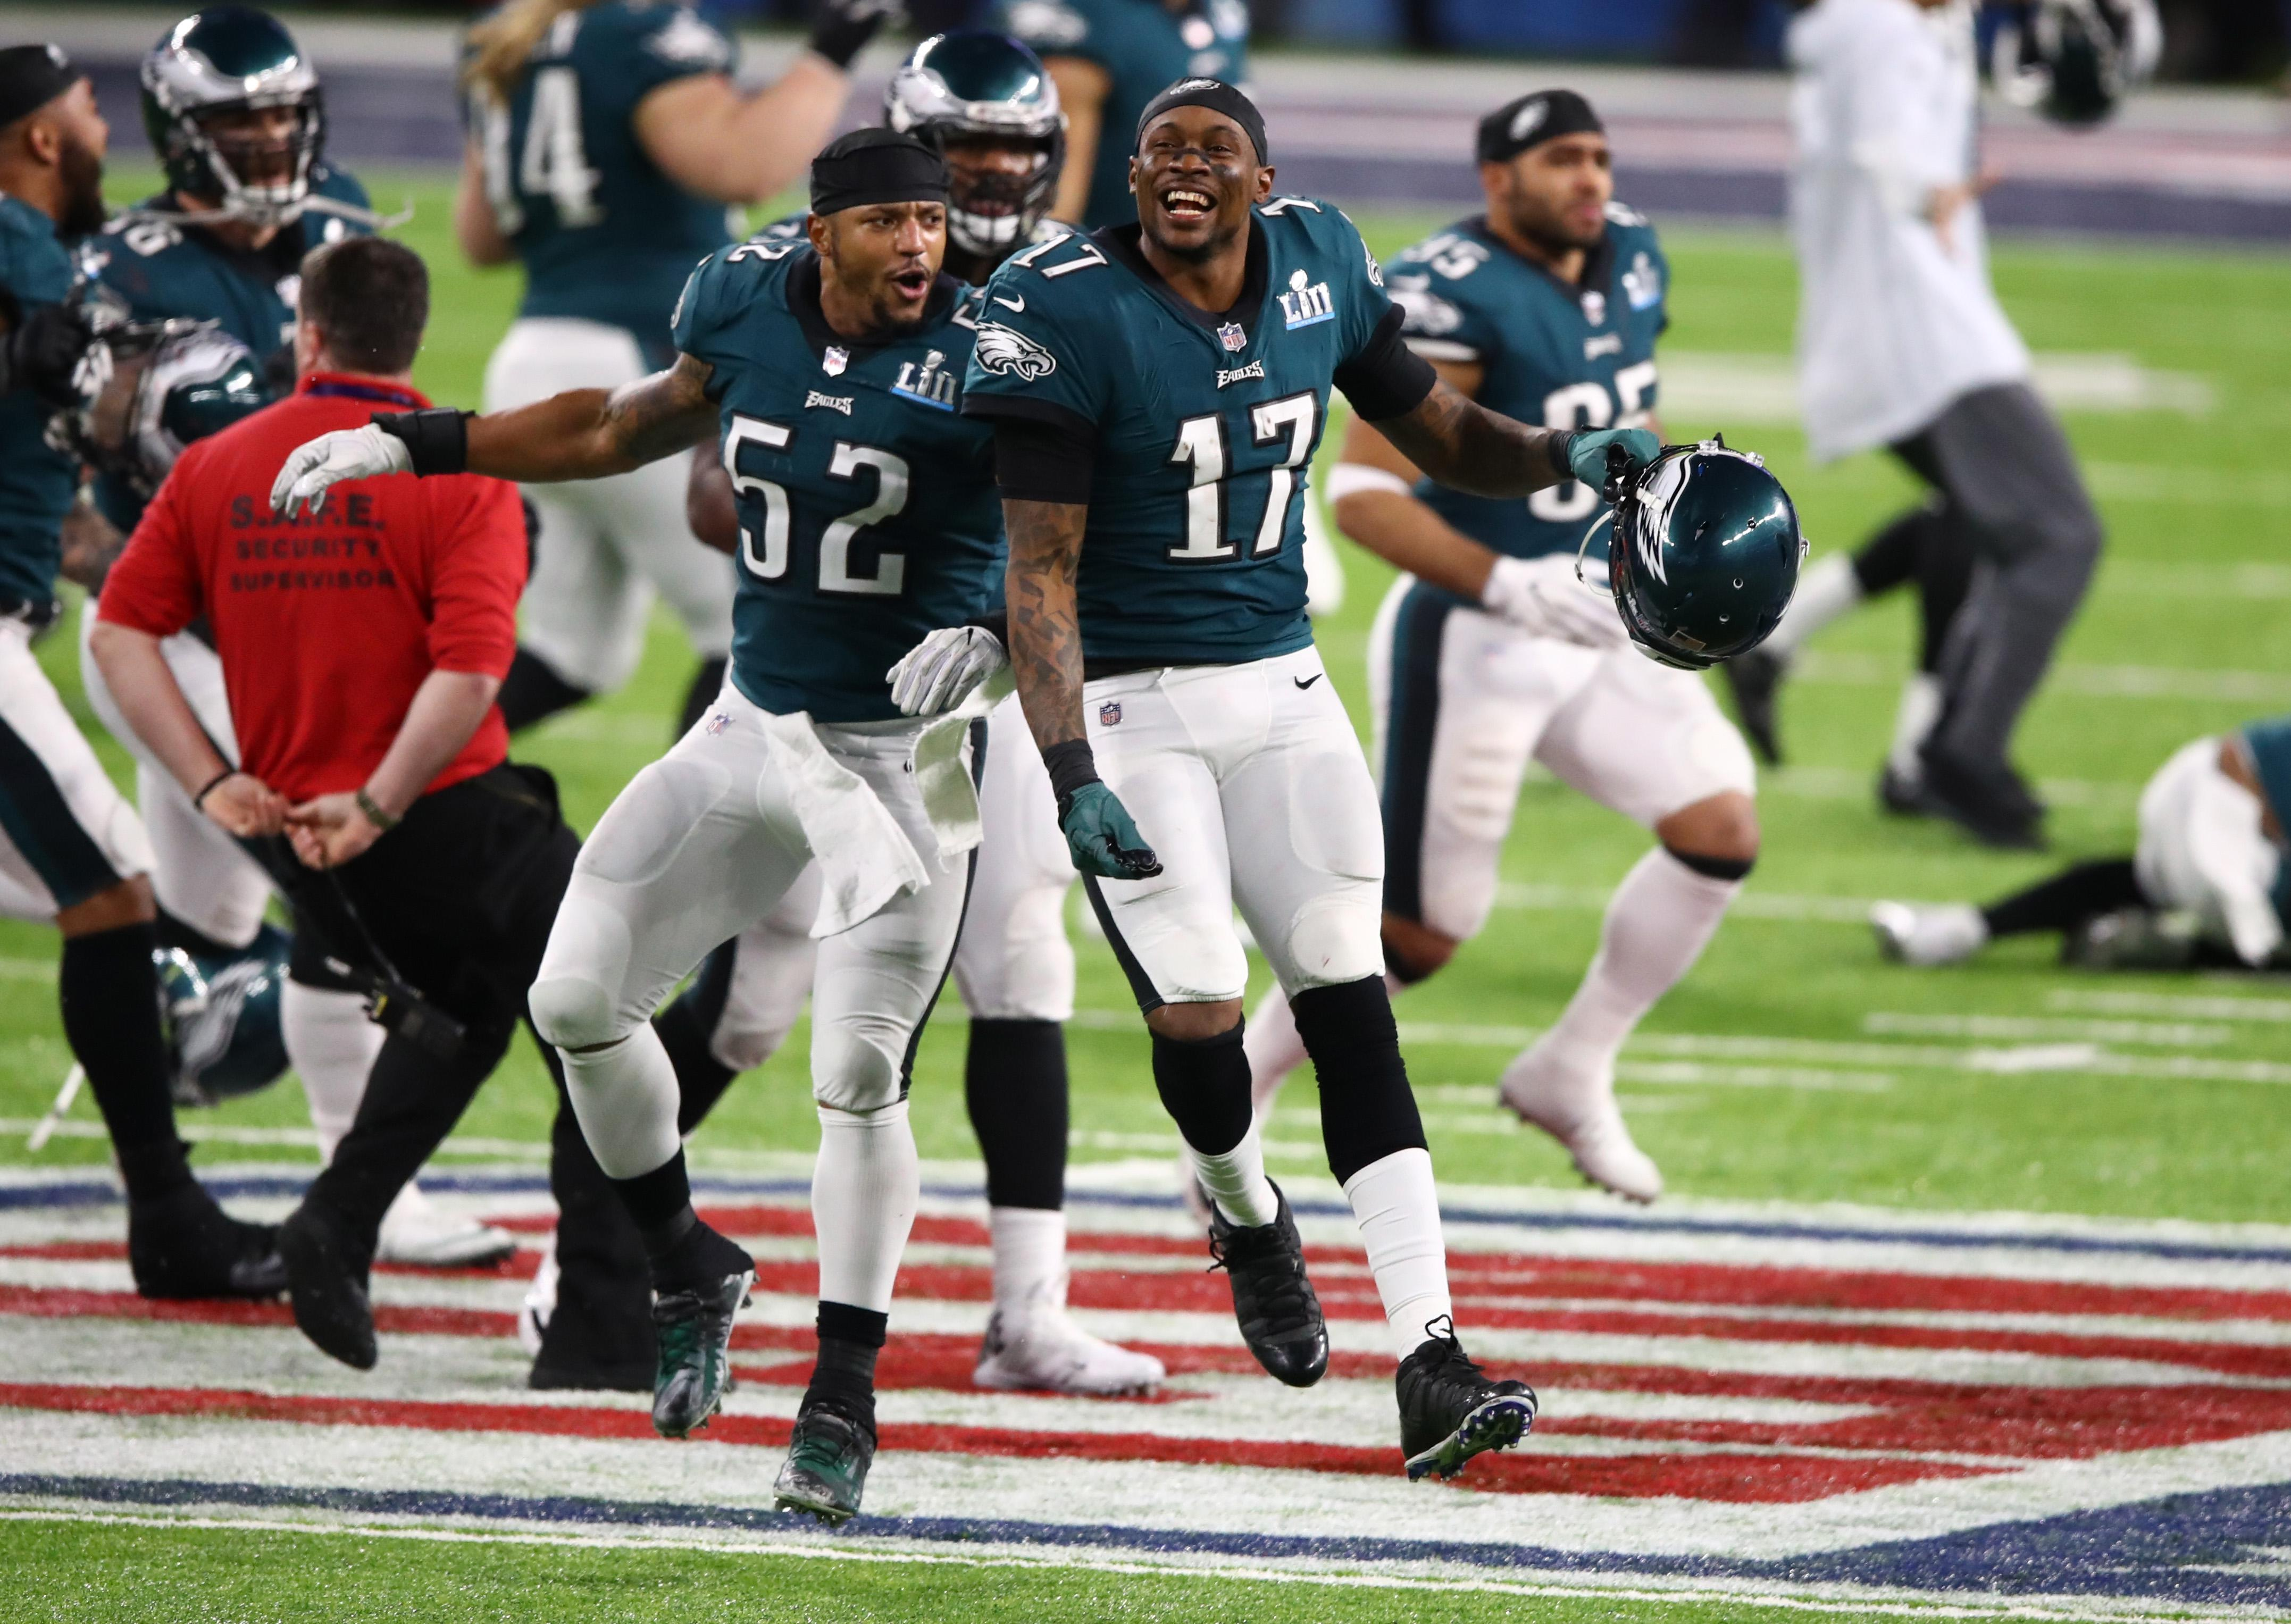 Philadelphia celebrated their first ever Super Bowl victory